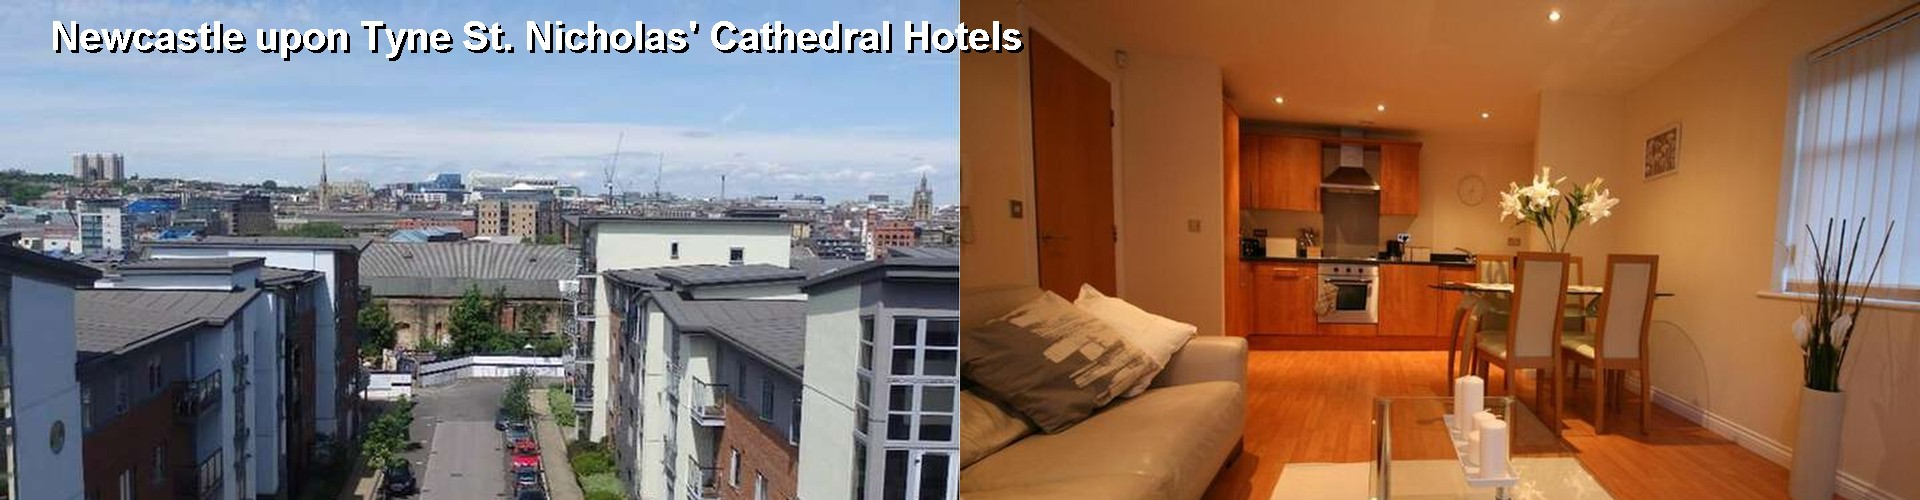 5 Best Hotels near Newcastle upon Tyne St. Nicholas' Cathedral